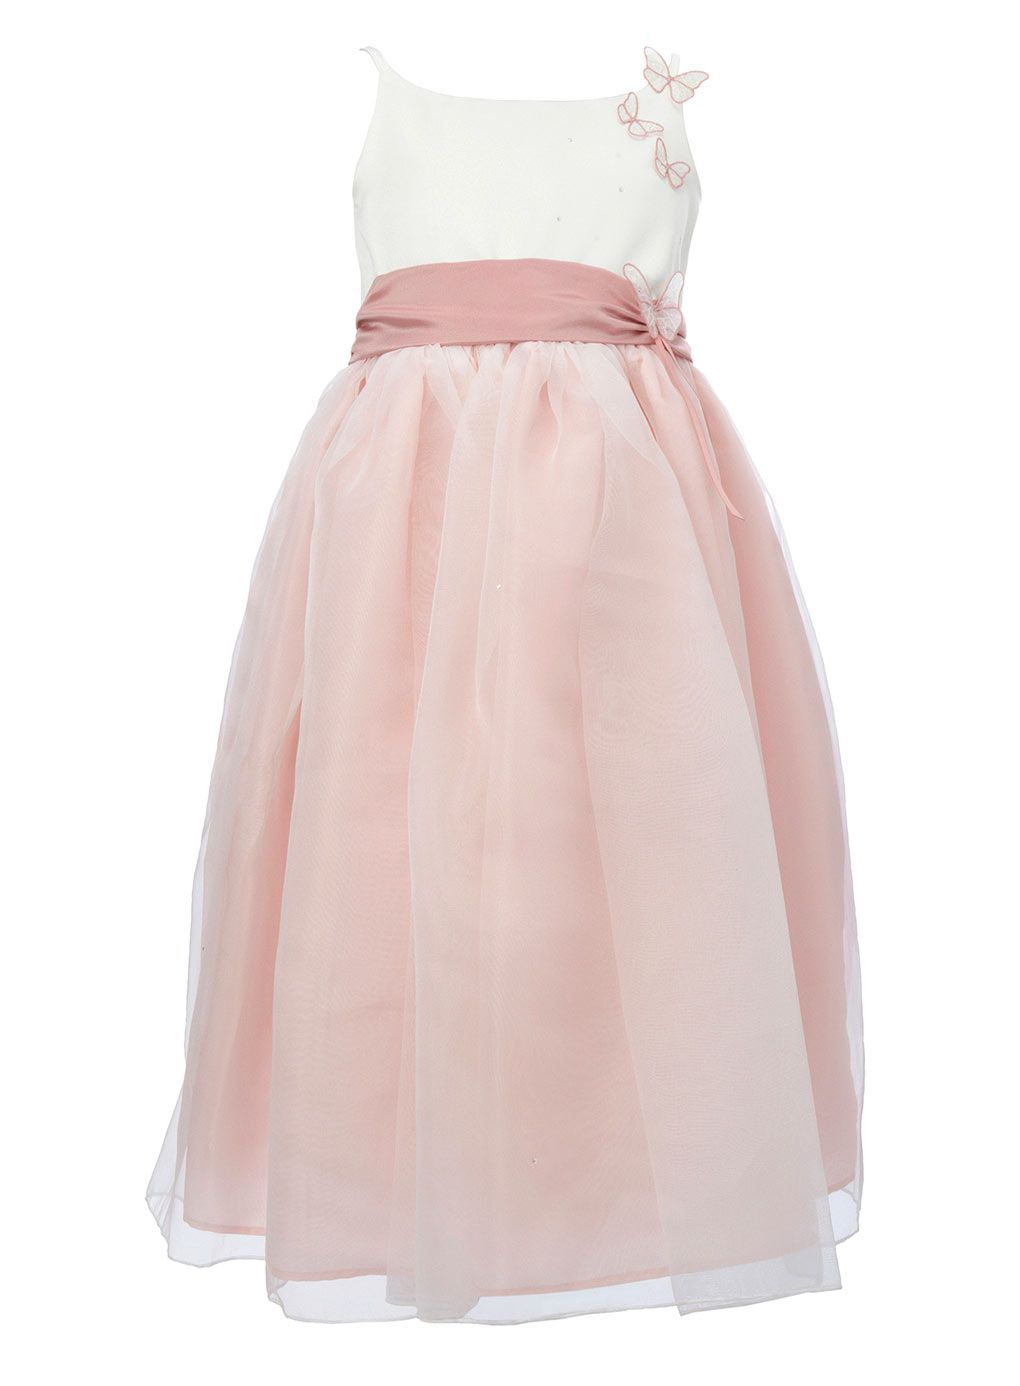 Lela Butterfly Dusky Pink Bridesmaid Dress Bhs For My Charlotte